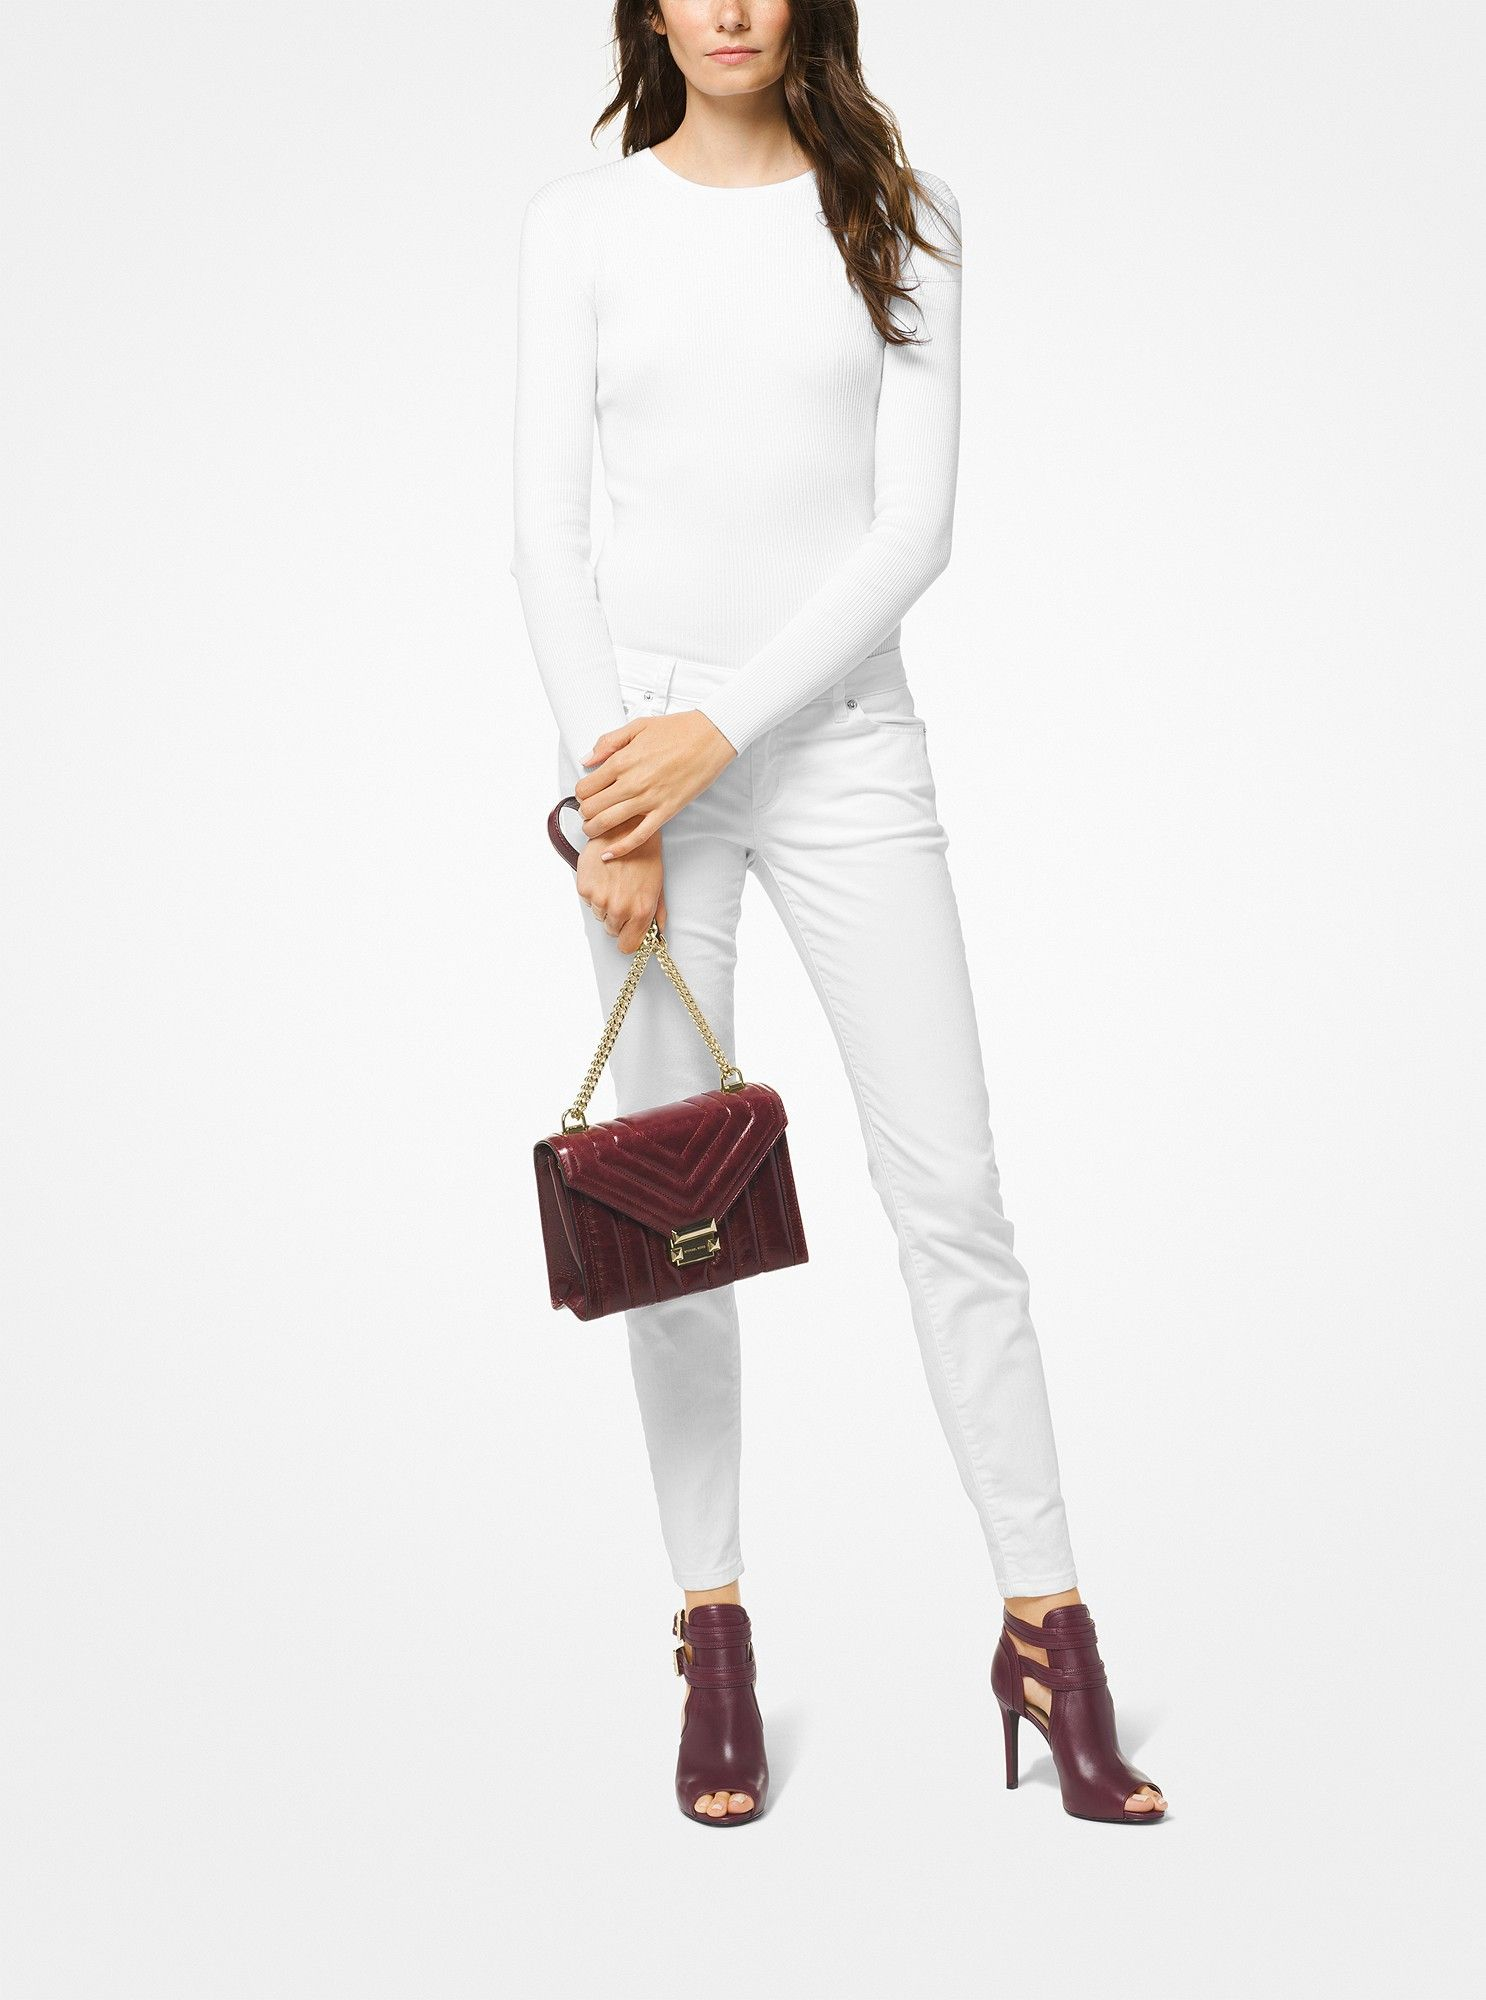 f930fc529730 Michael Kors Whitney Large Quilted Leather Convertible Shoulder Bag -  Oxblood